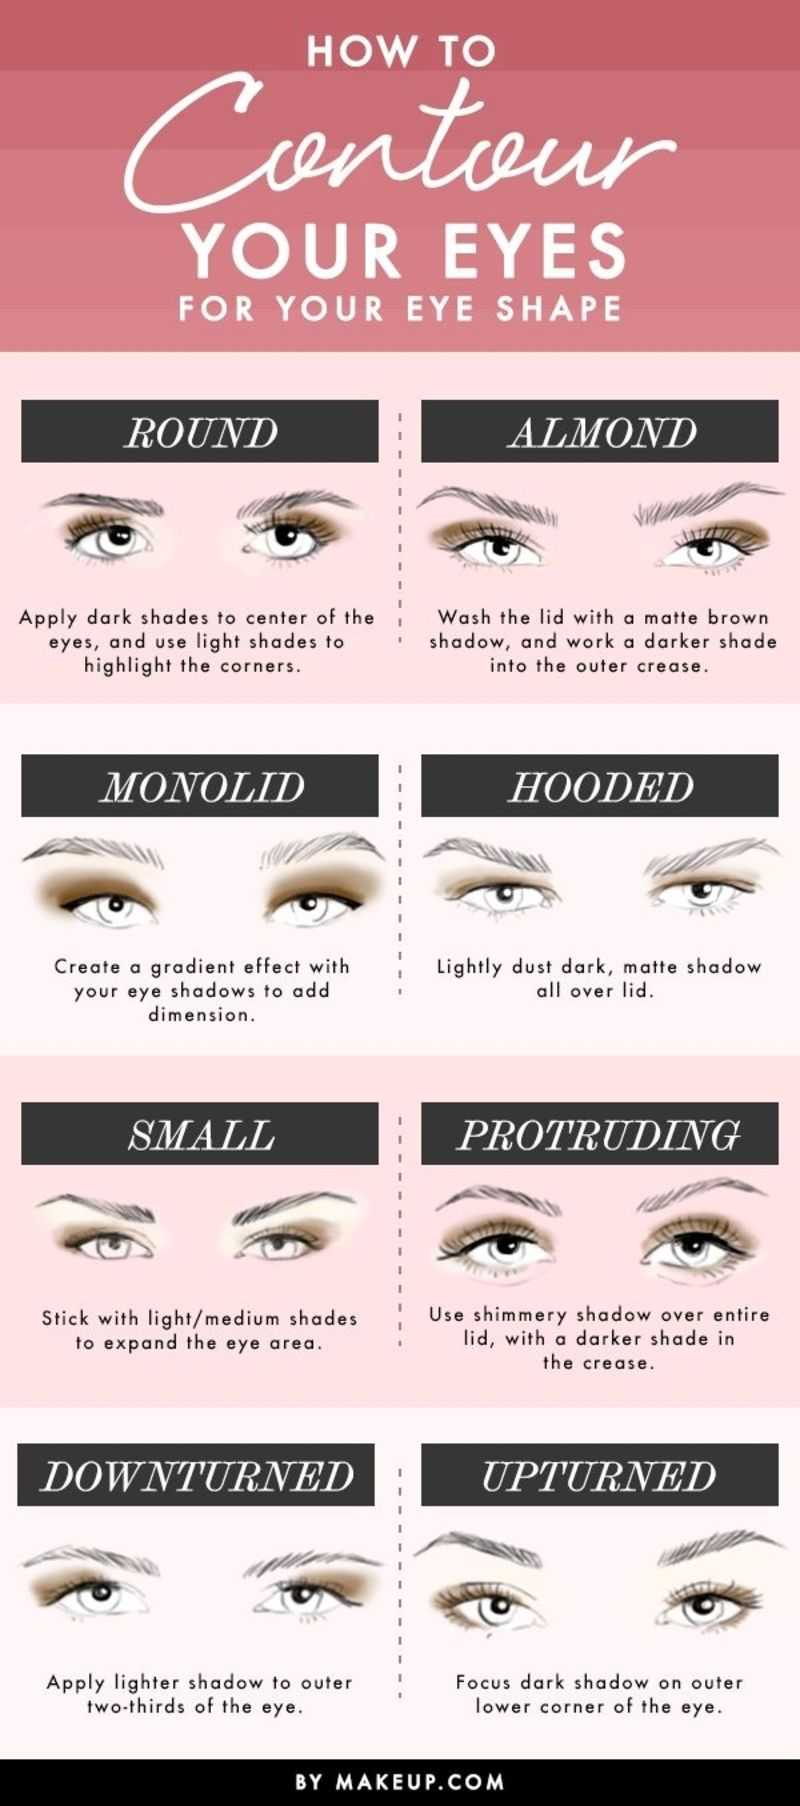 How To Contour Your Eyes And Enhance Your Eye Shape